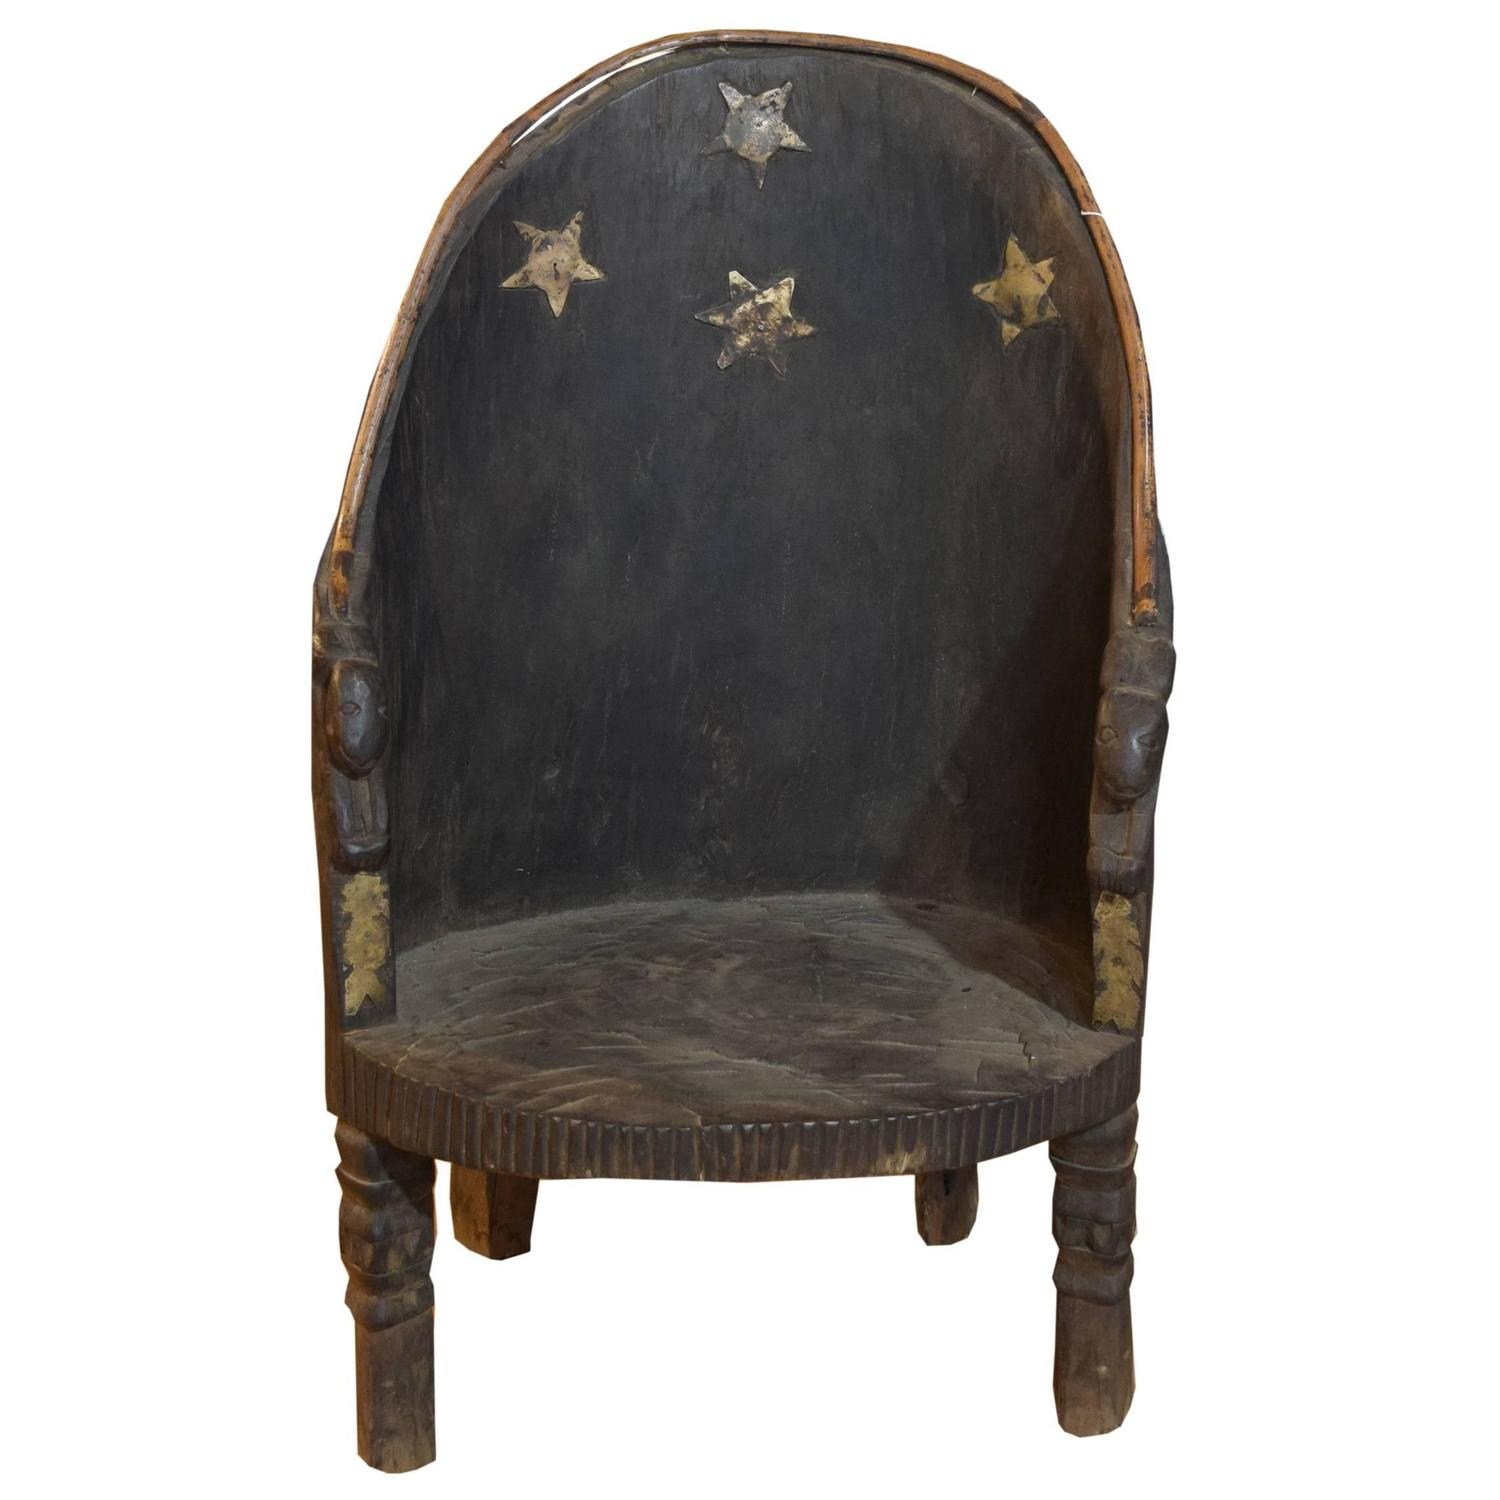 Chief 39 s chair from nagaland india for sale at 1stdibs Xinlan home furniture limited